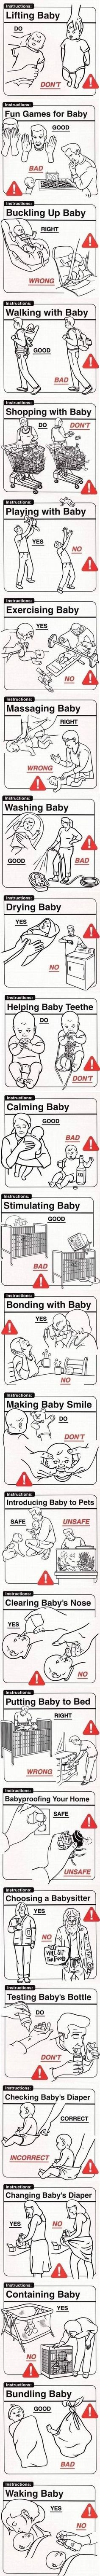 Baby Handling Techniques - very helpful